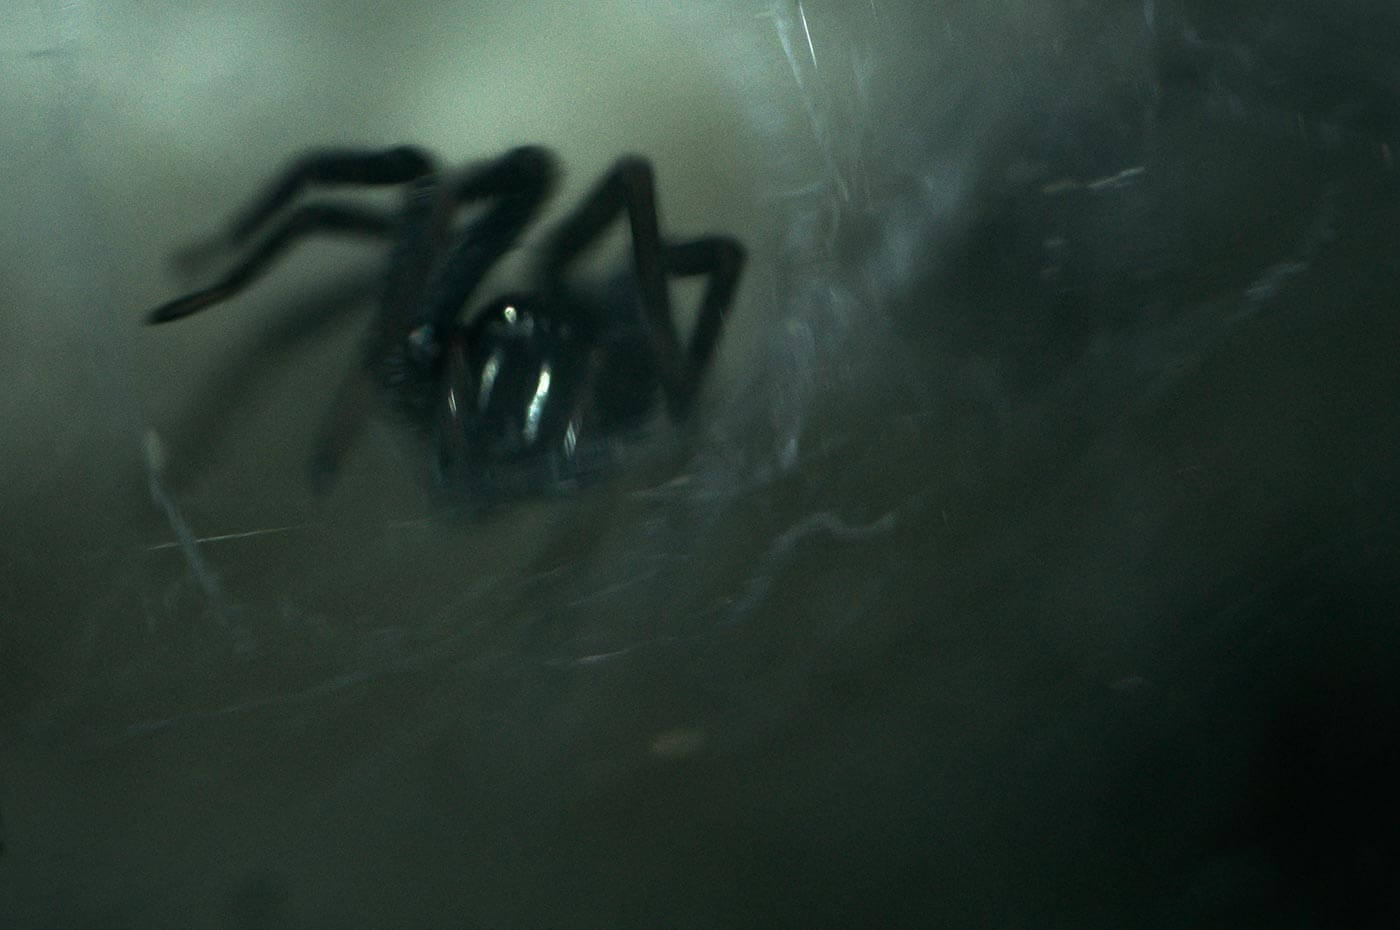 Spider in a dark background